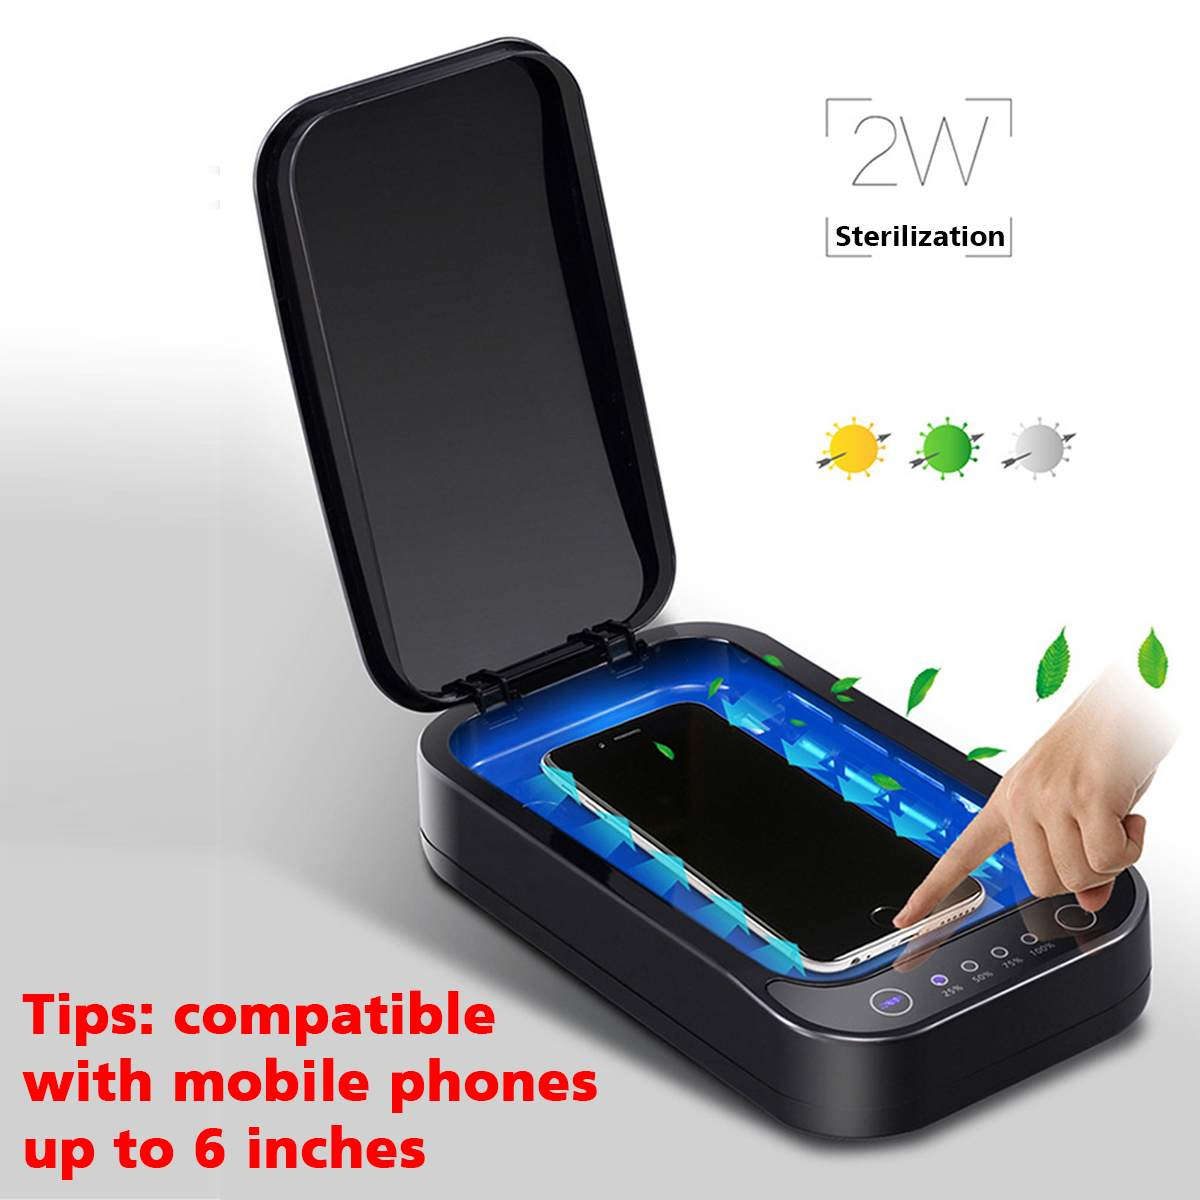 UV Disinfection Box Sanitizer Charger Prevent Flu For IPhone/Samsung Mobile Phone Headphones Mask Sterilizer Kill 99.9% Viruses